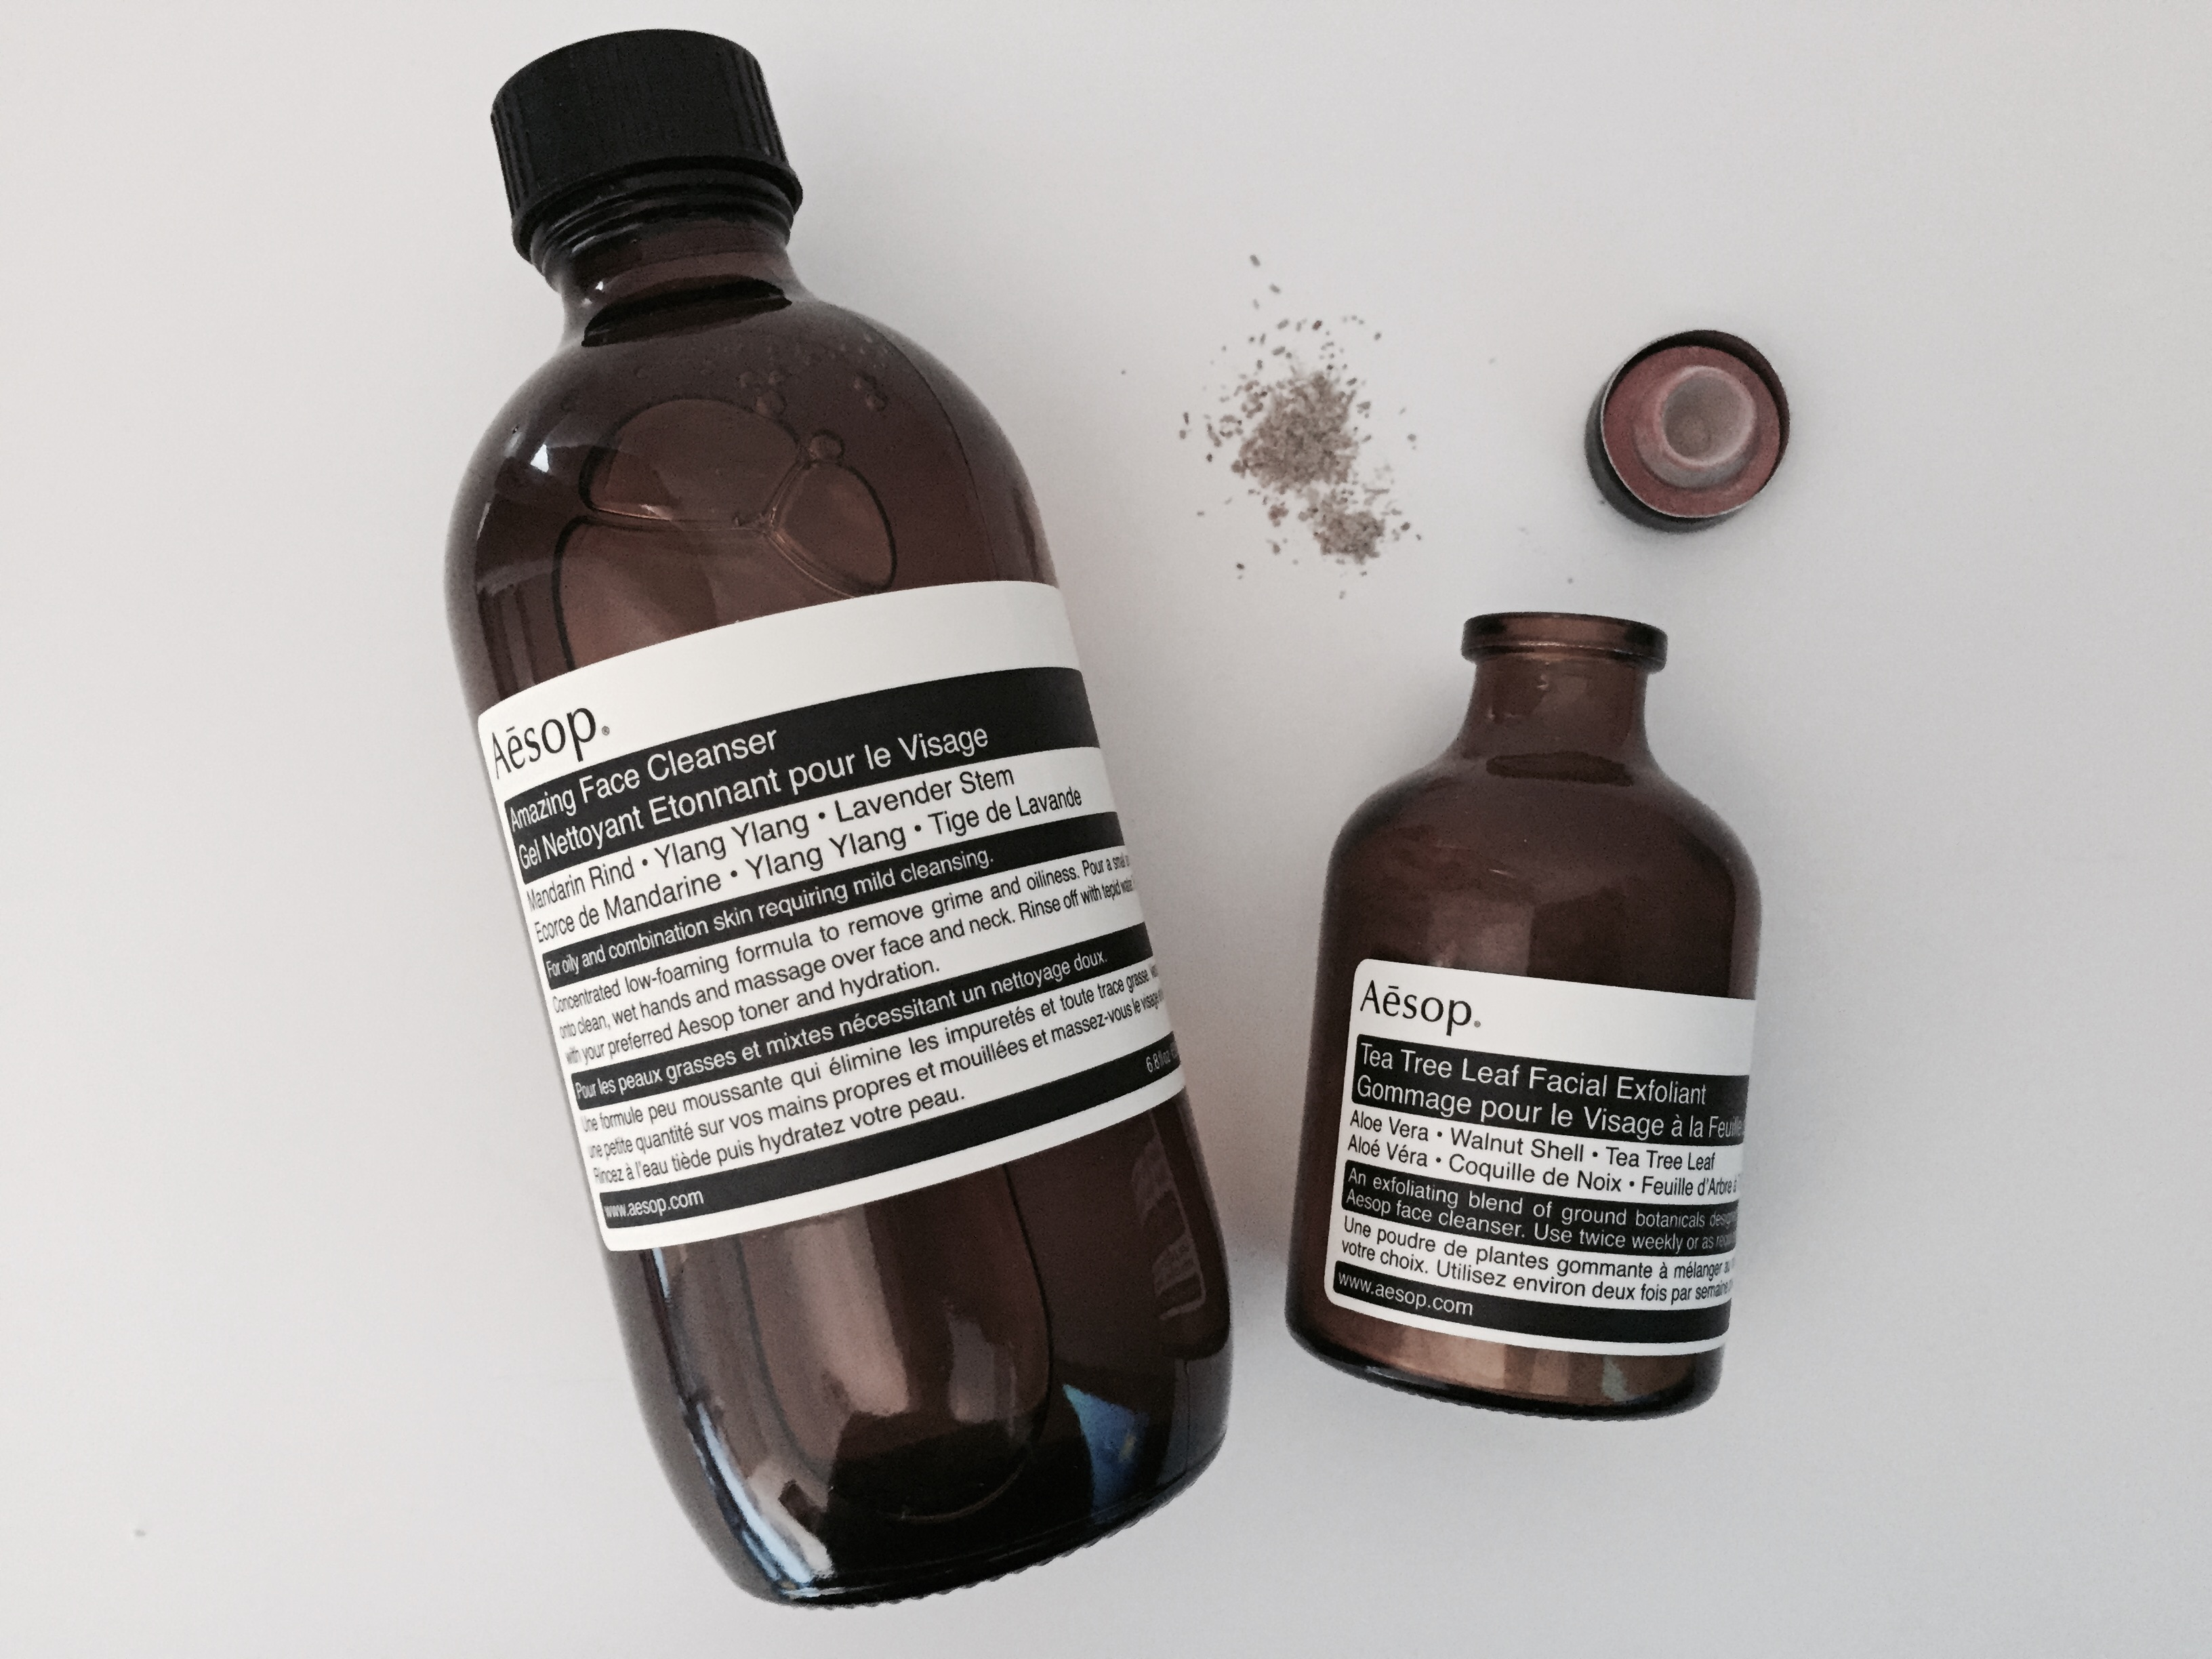 Aesop Skincare | Aesop Bath Products | Origins Skin Care Wiki